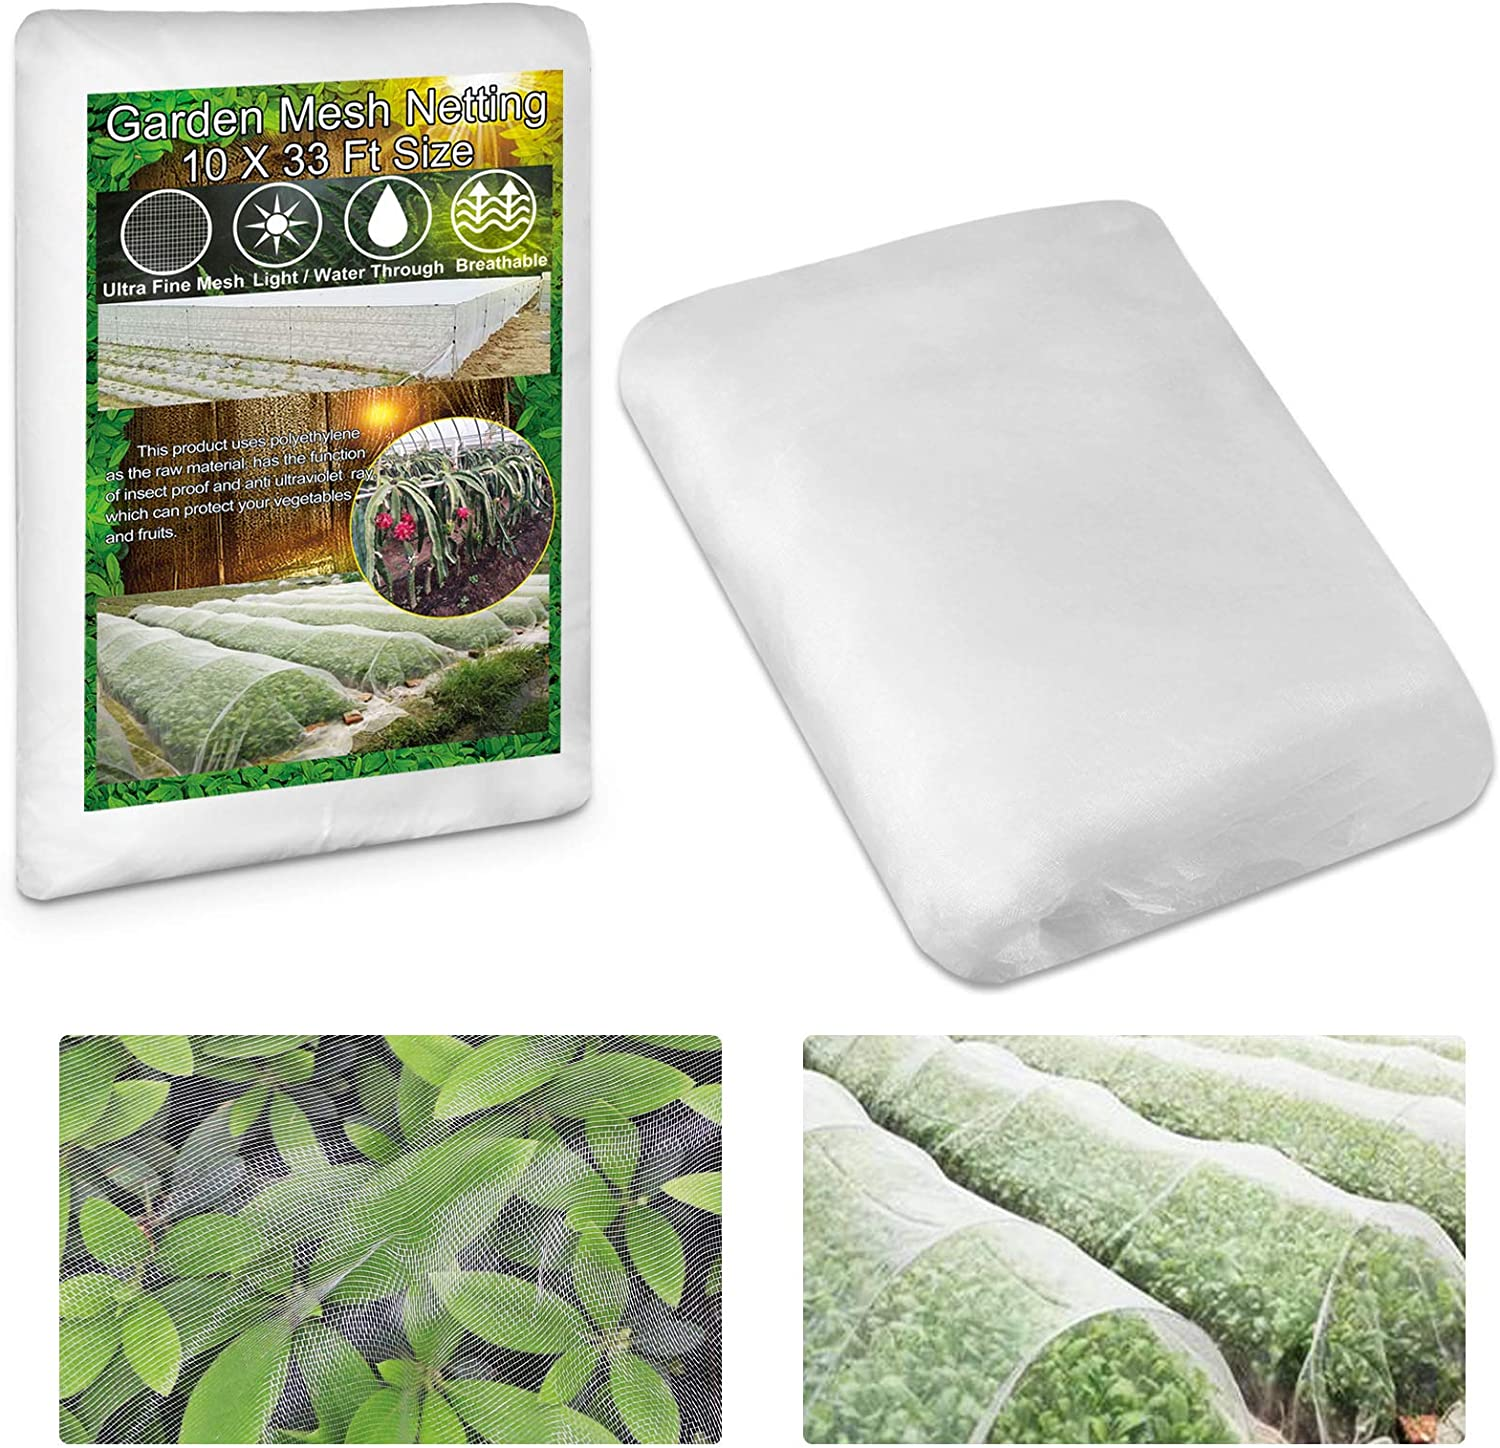 """KY-YPFW 10x33 Ft Garden Netting Plant Covers - 0.032"""" x 0.04"""" Ultra Fine Mesh Protect Vegetables Fruits Flowers Plants Crops Greenhouse Row Cover Protection Screen Barrier Net for Birds Animals, White : Patio, Lawn & Garden"""